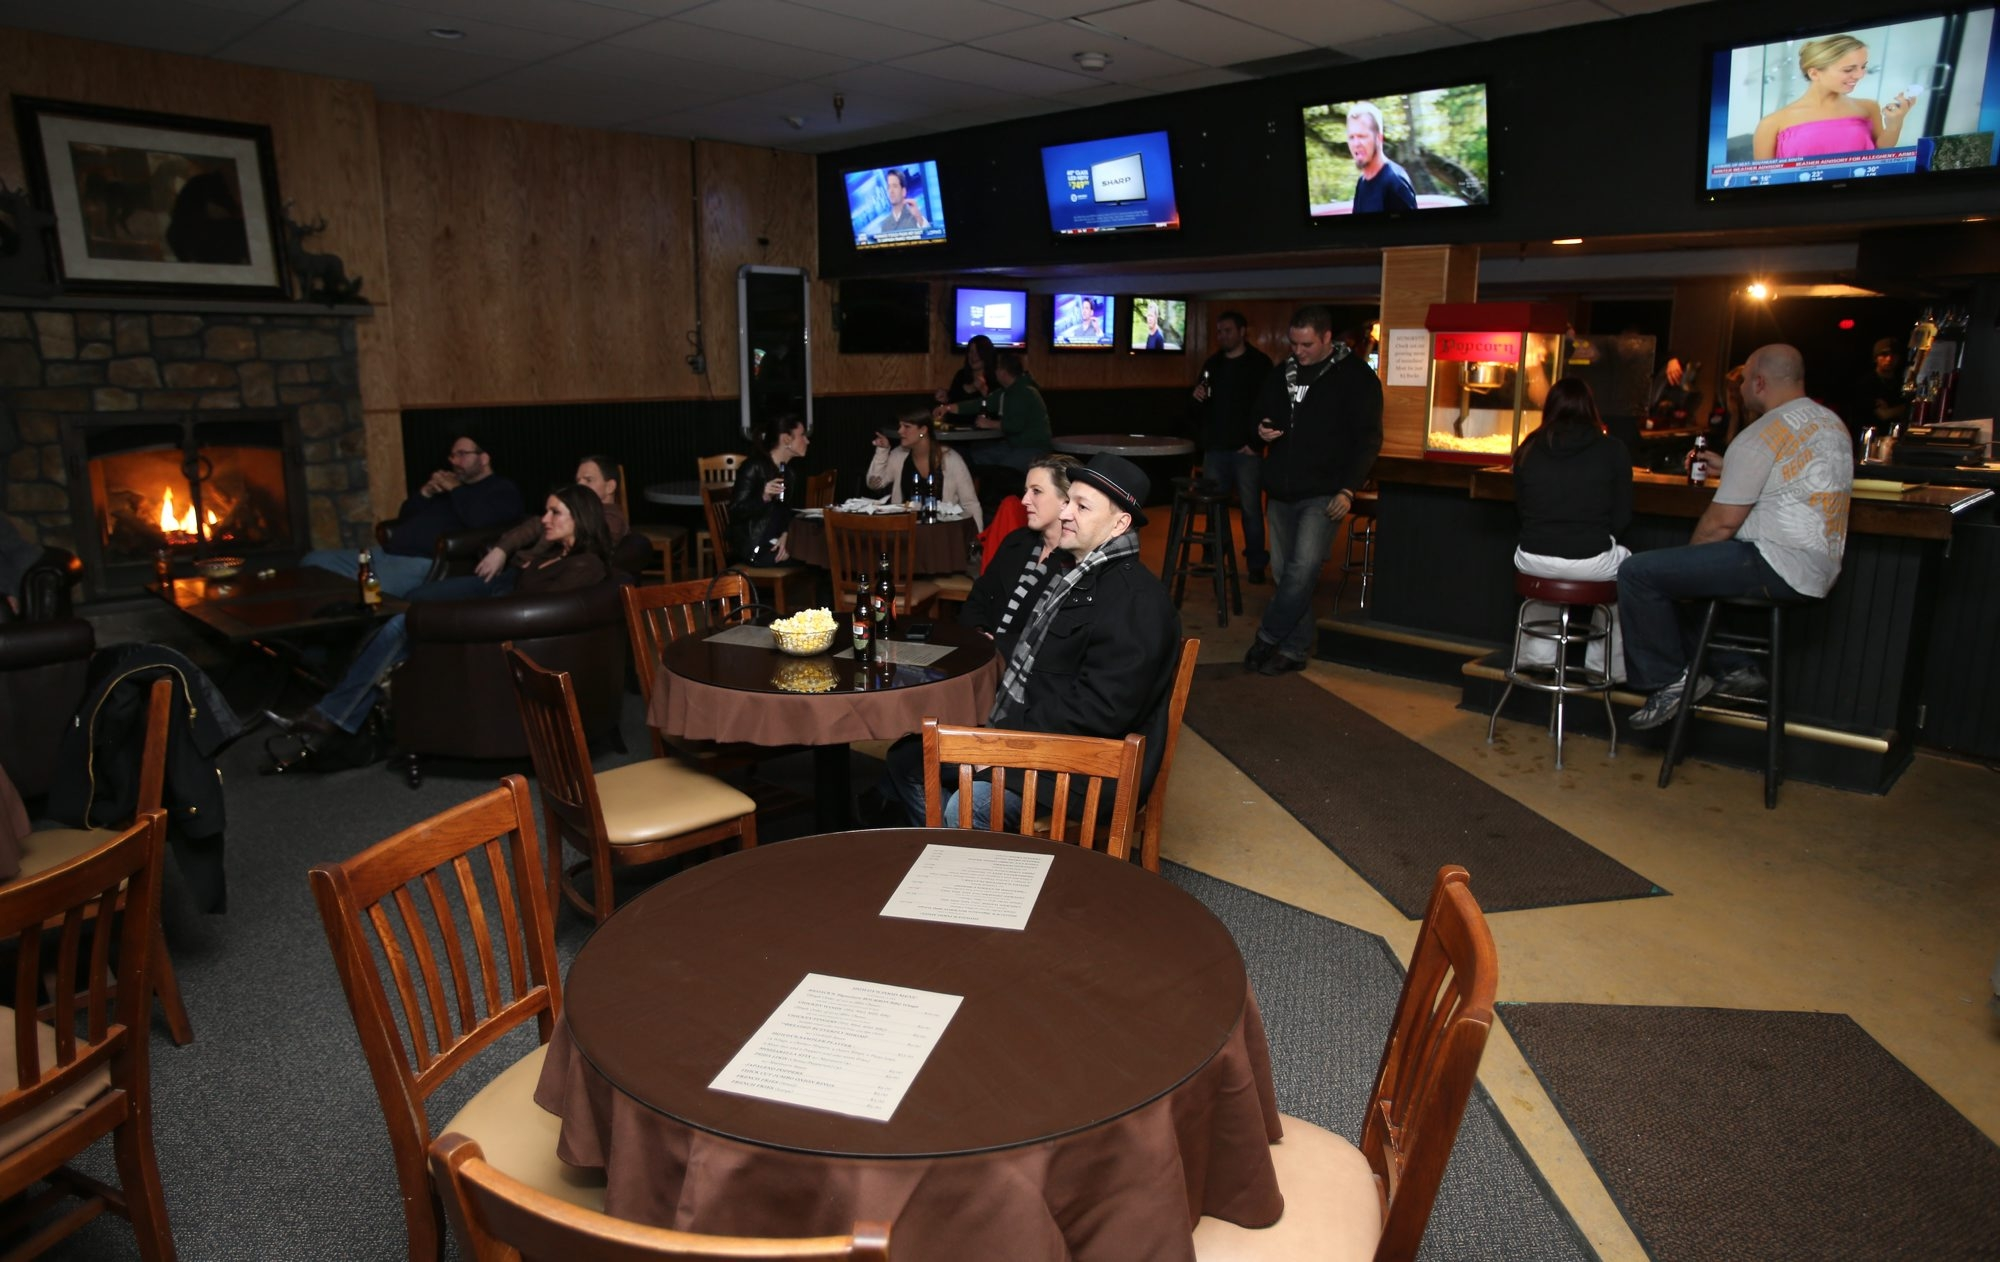 A cozy front room in Howdy's has nice seating around a fireplace and plenty of places to watch a game. At left, the Michael Bly Band performs on a large stage near the dance floor.